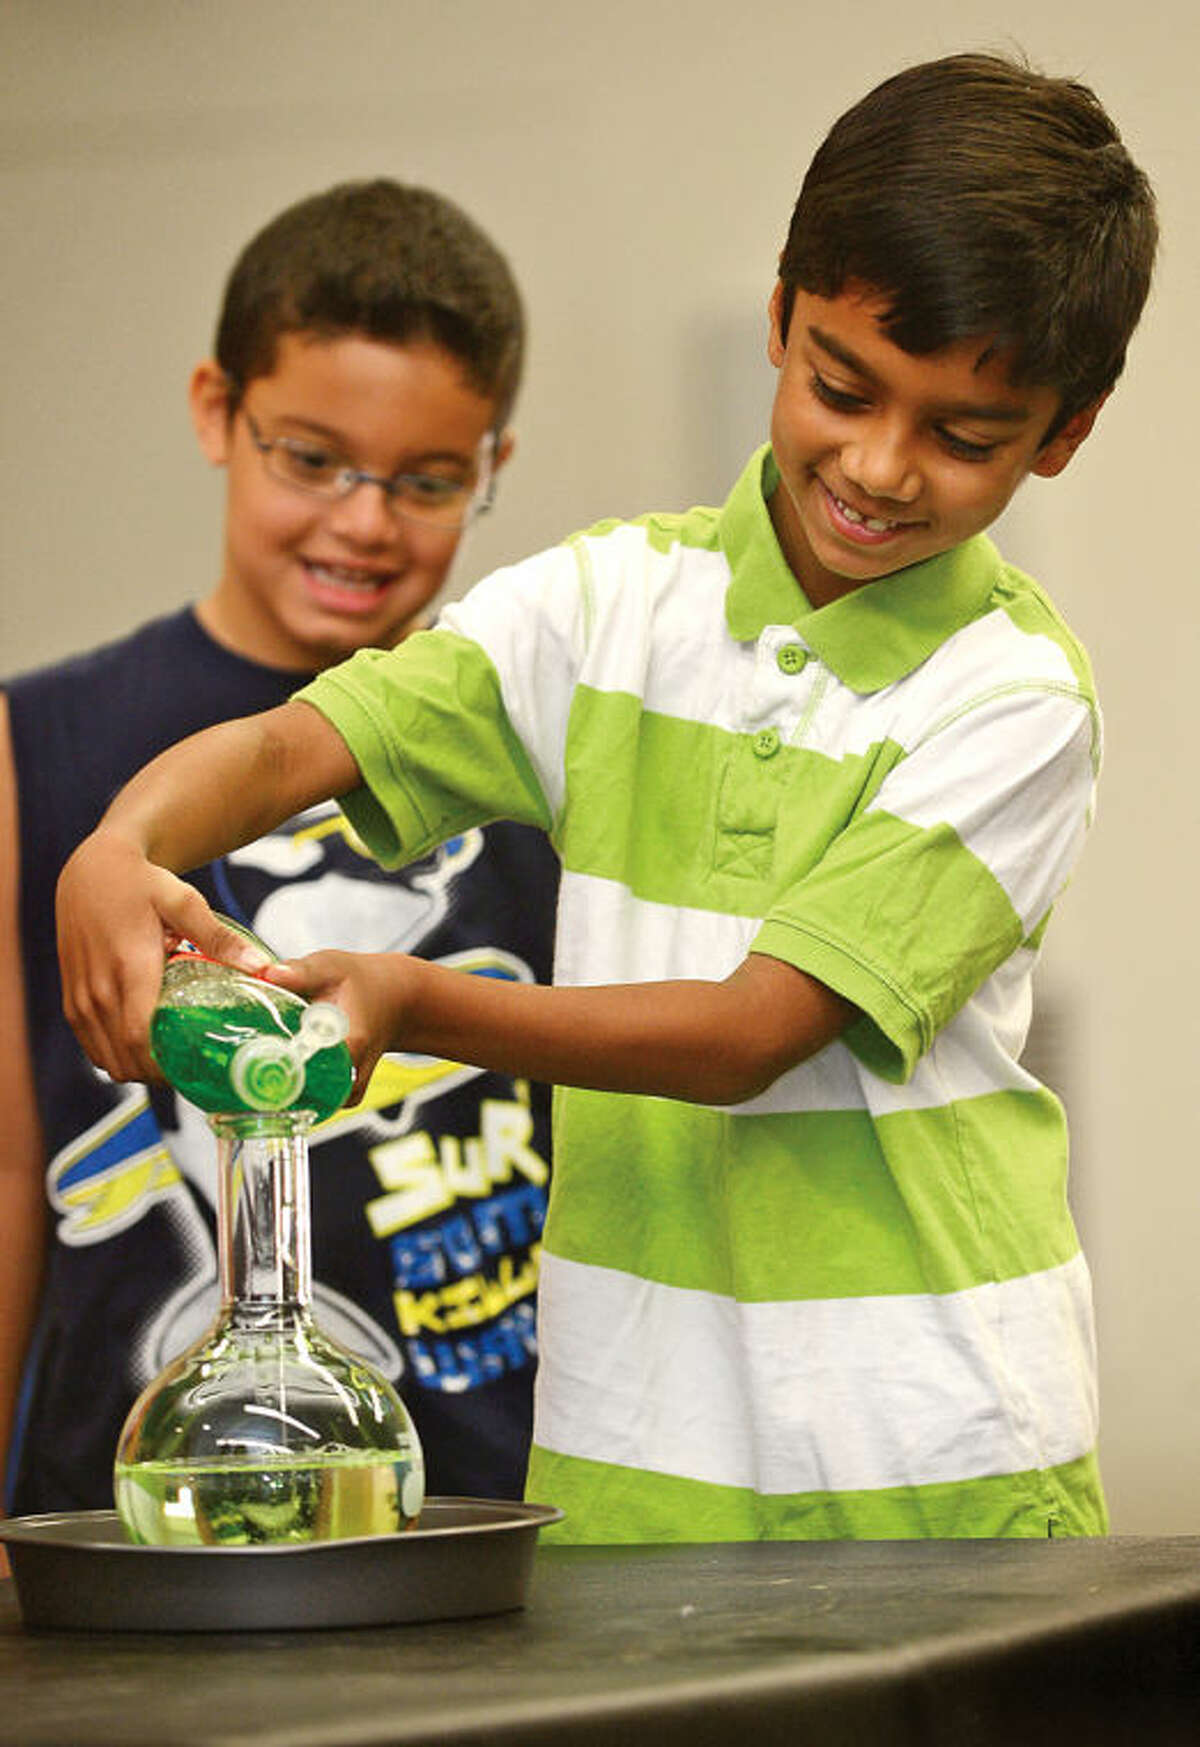 Hour photo / Erik Trautmann Aayush Athavia, 7, conducts an experiment with Interactive science storyteller, Justin Maruri, otherwise known as a Scienceteller, during his presentation